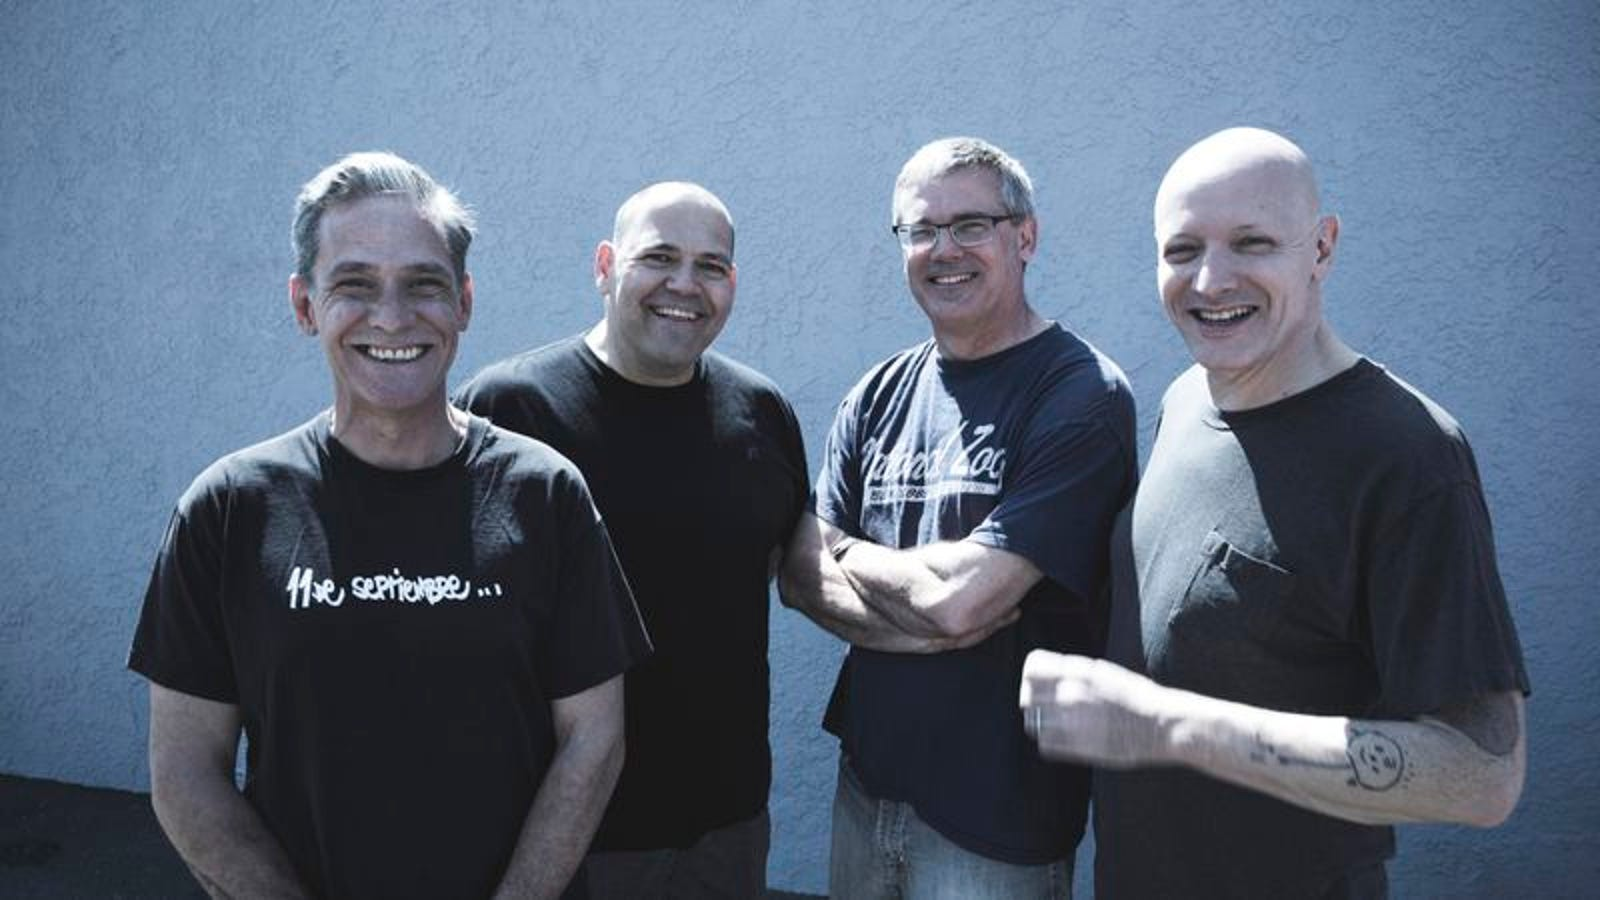 descendents u2019 milo aukerman on starting his music career at 53 and the songs that got him there